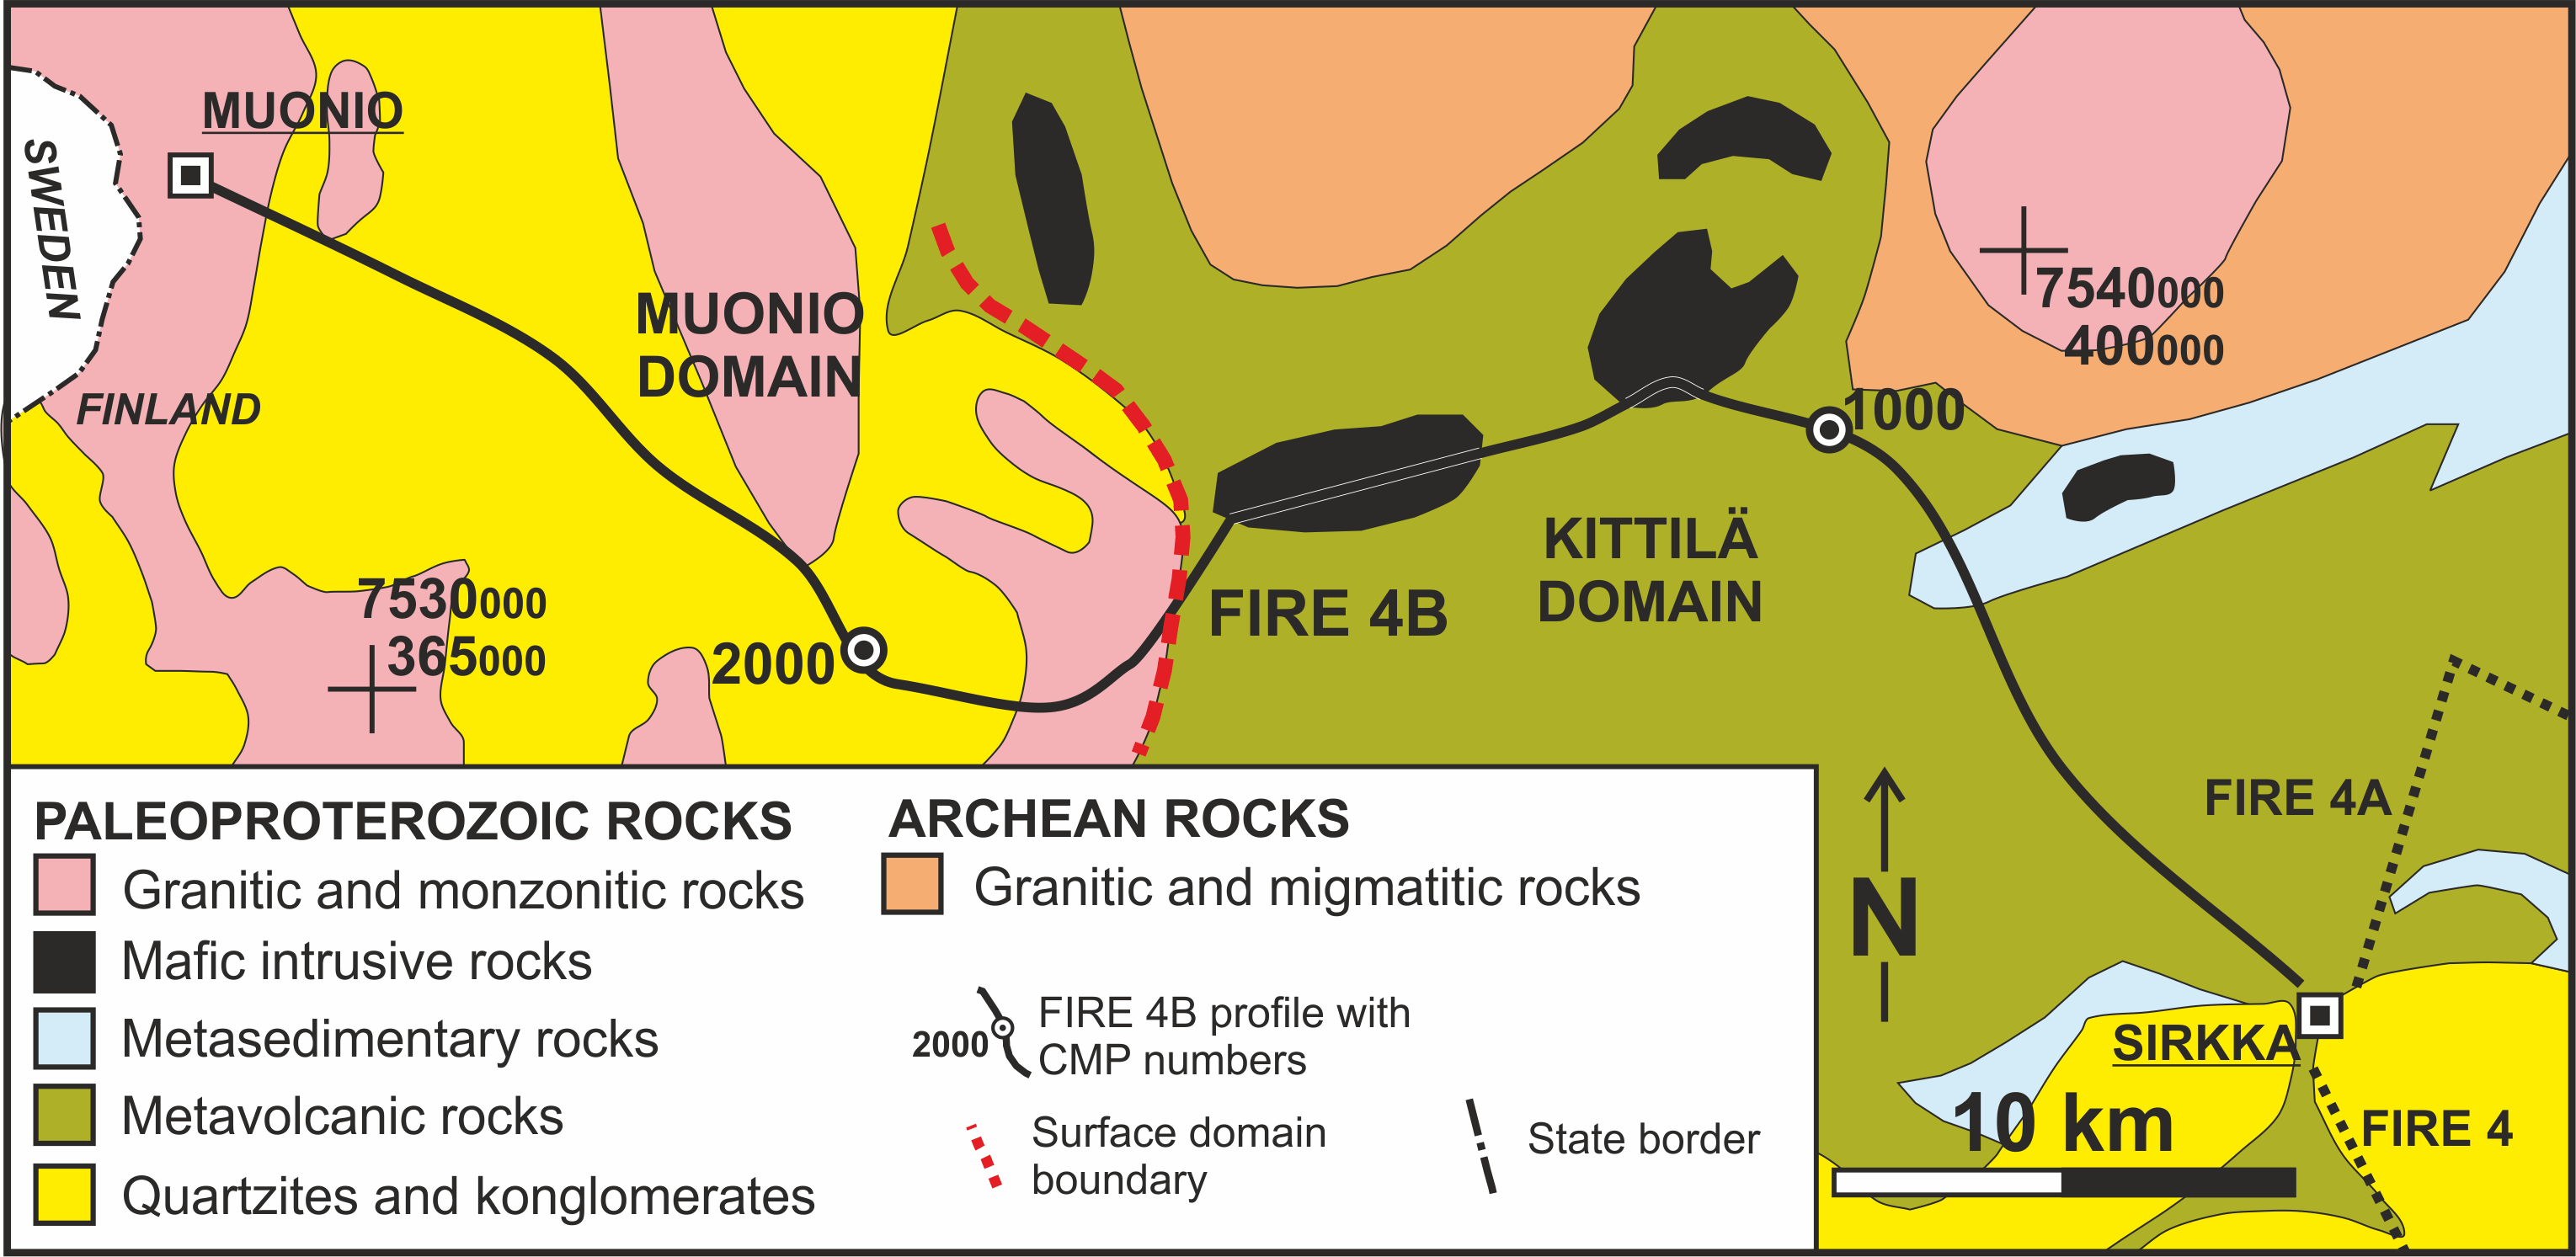 FIRE 4B survey line on top of the geological map